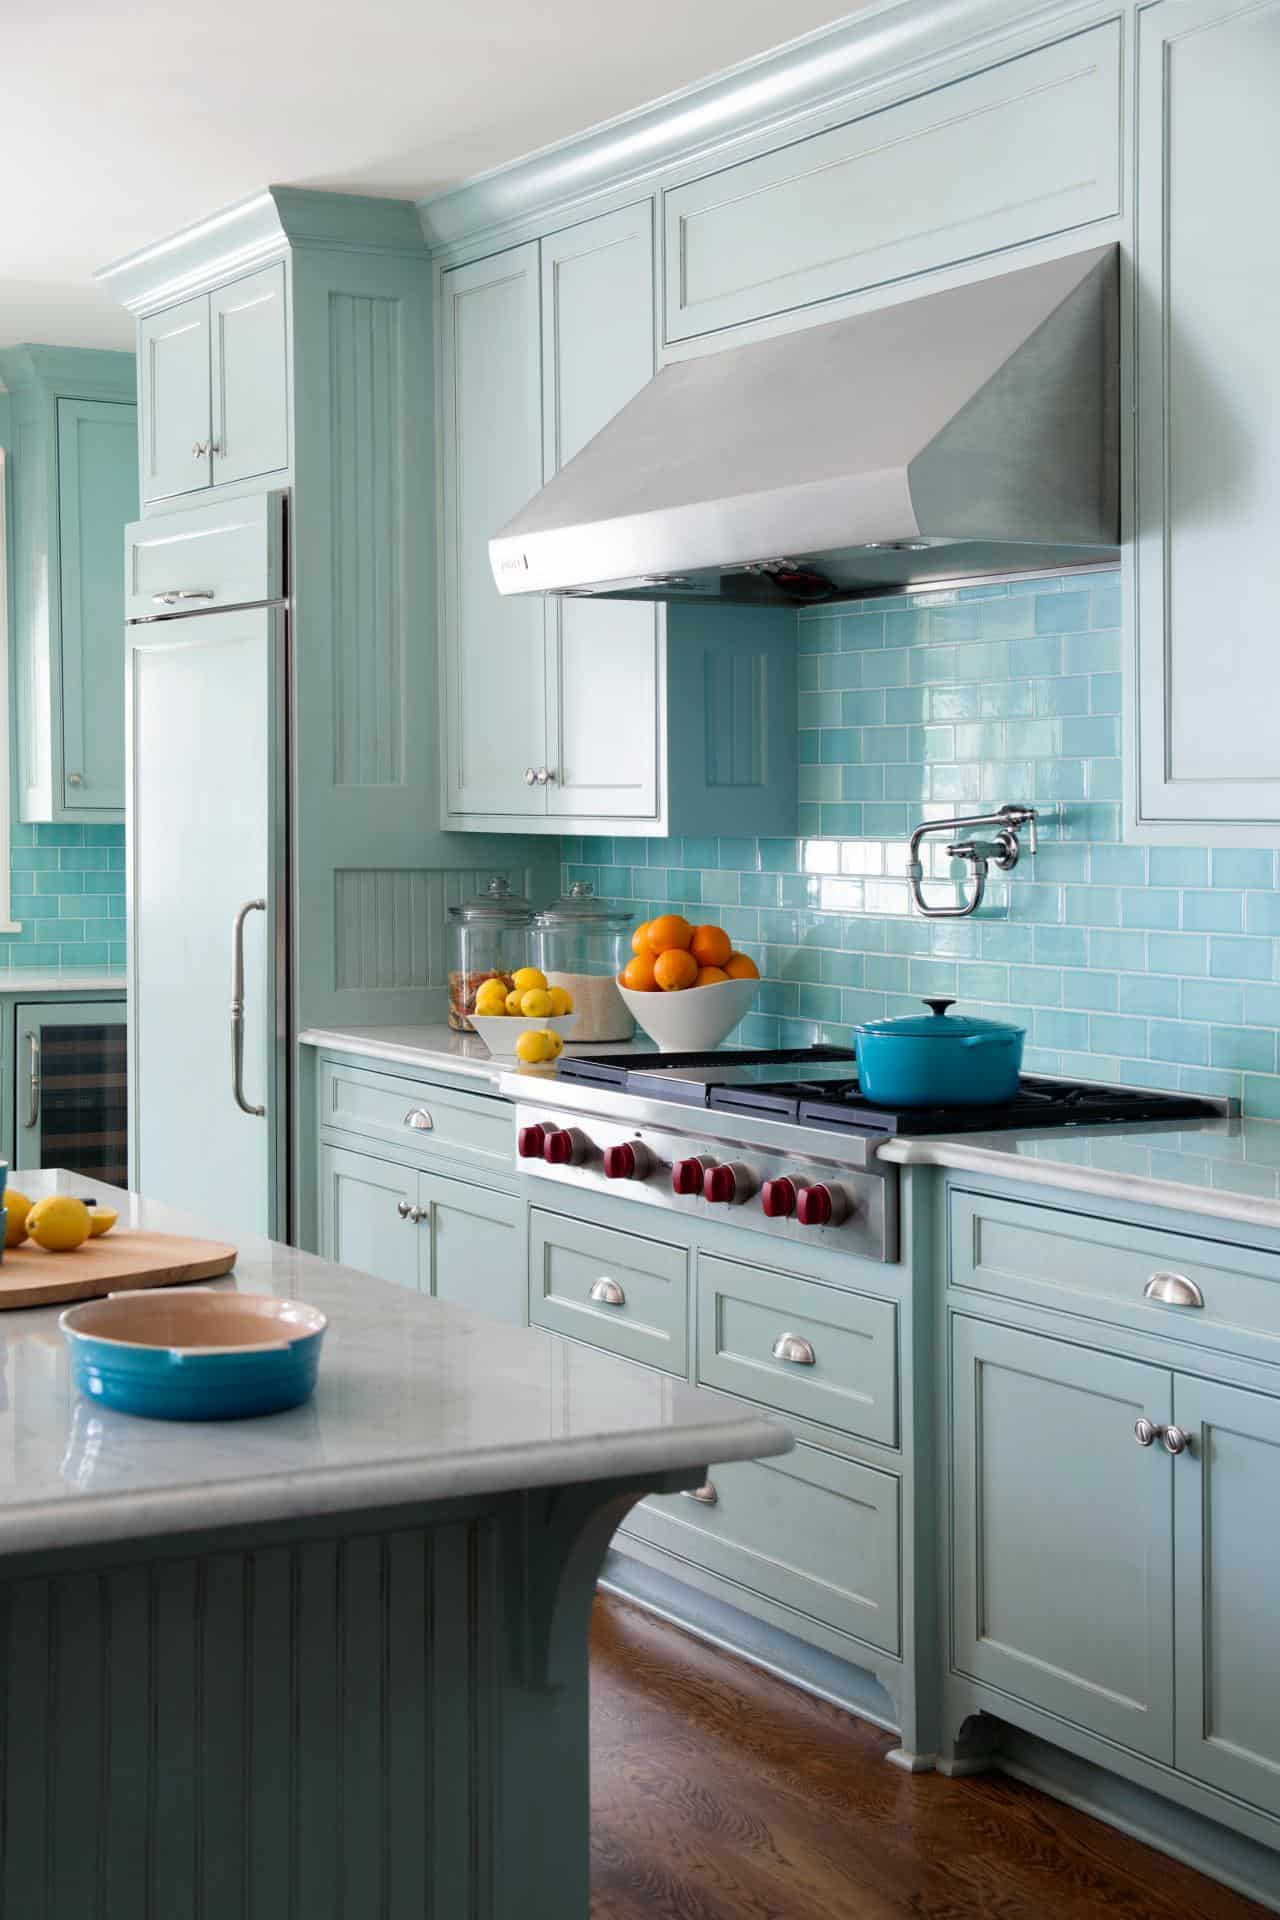 Retro kitchen ideas to upgrade your current kitchen Revamp old kitchen cabinets